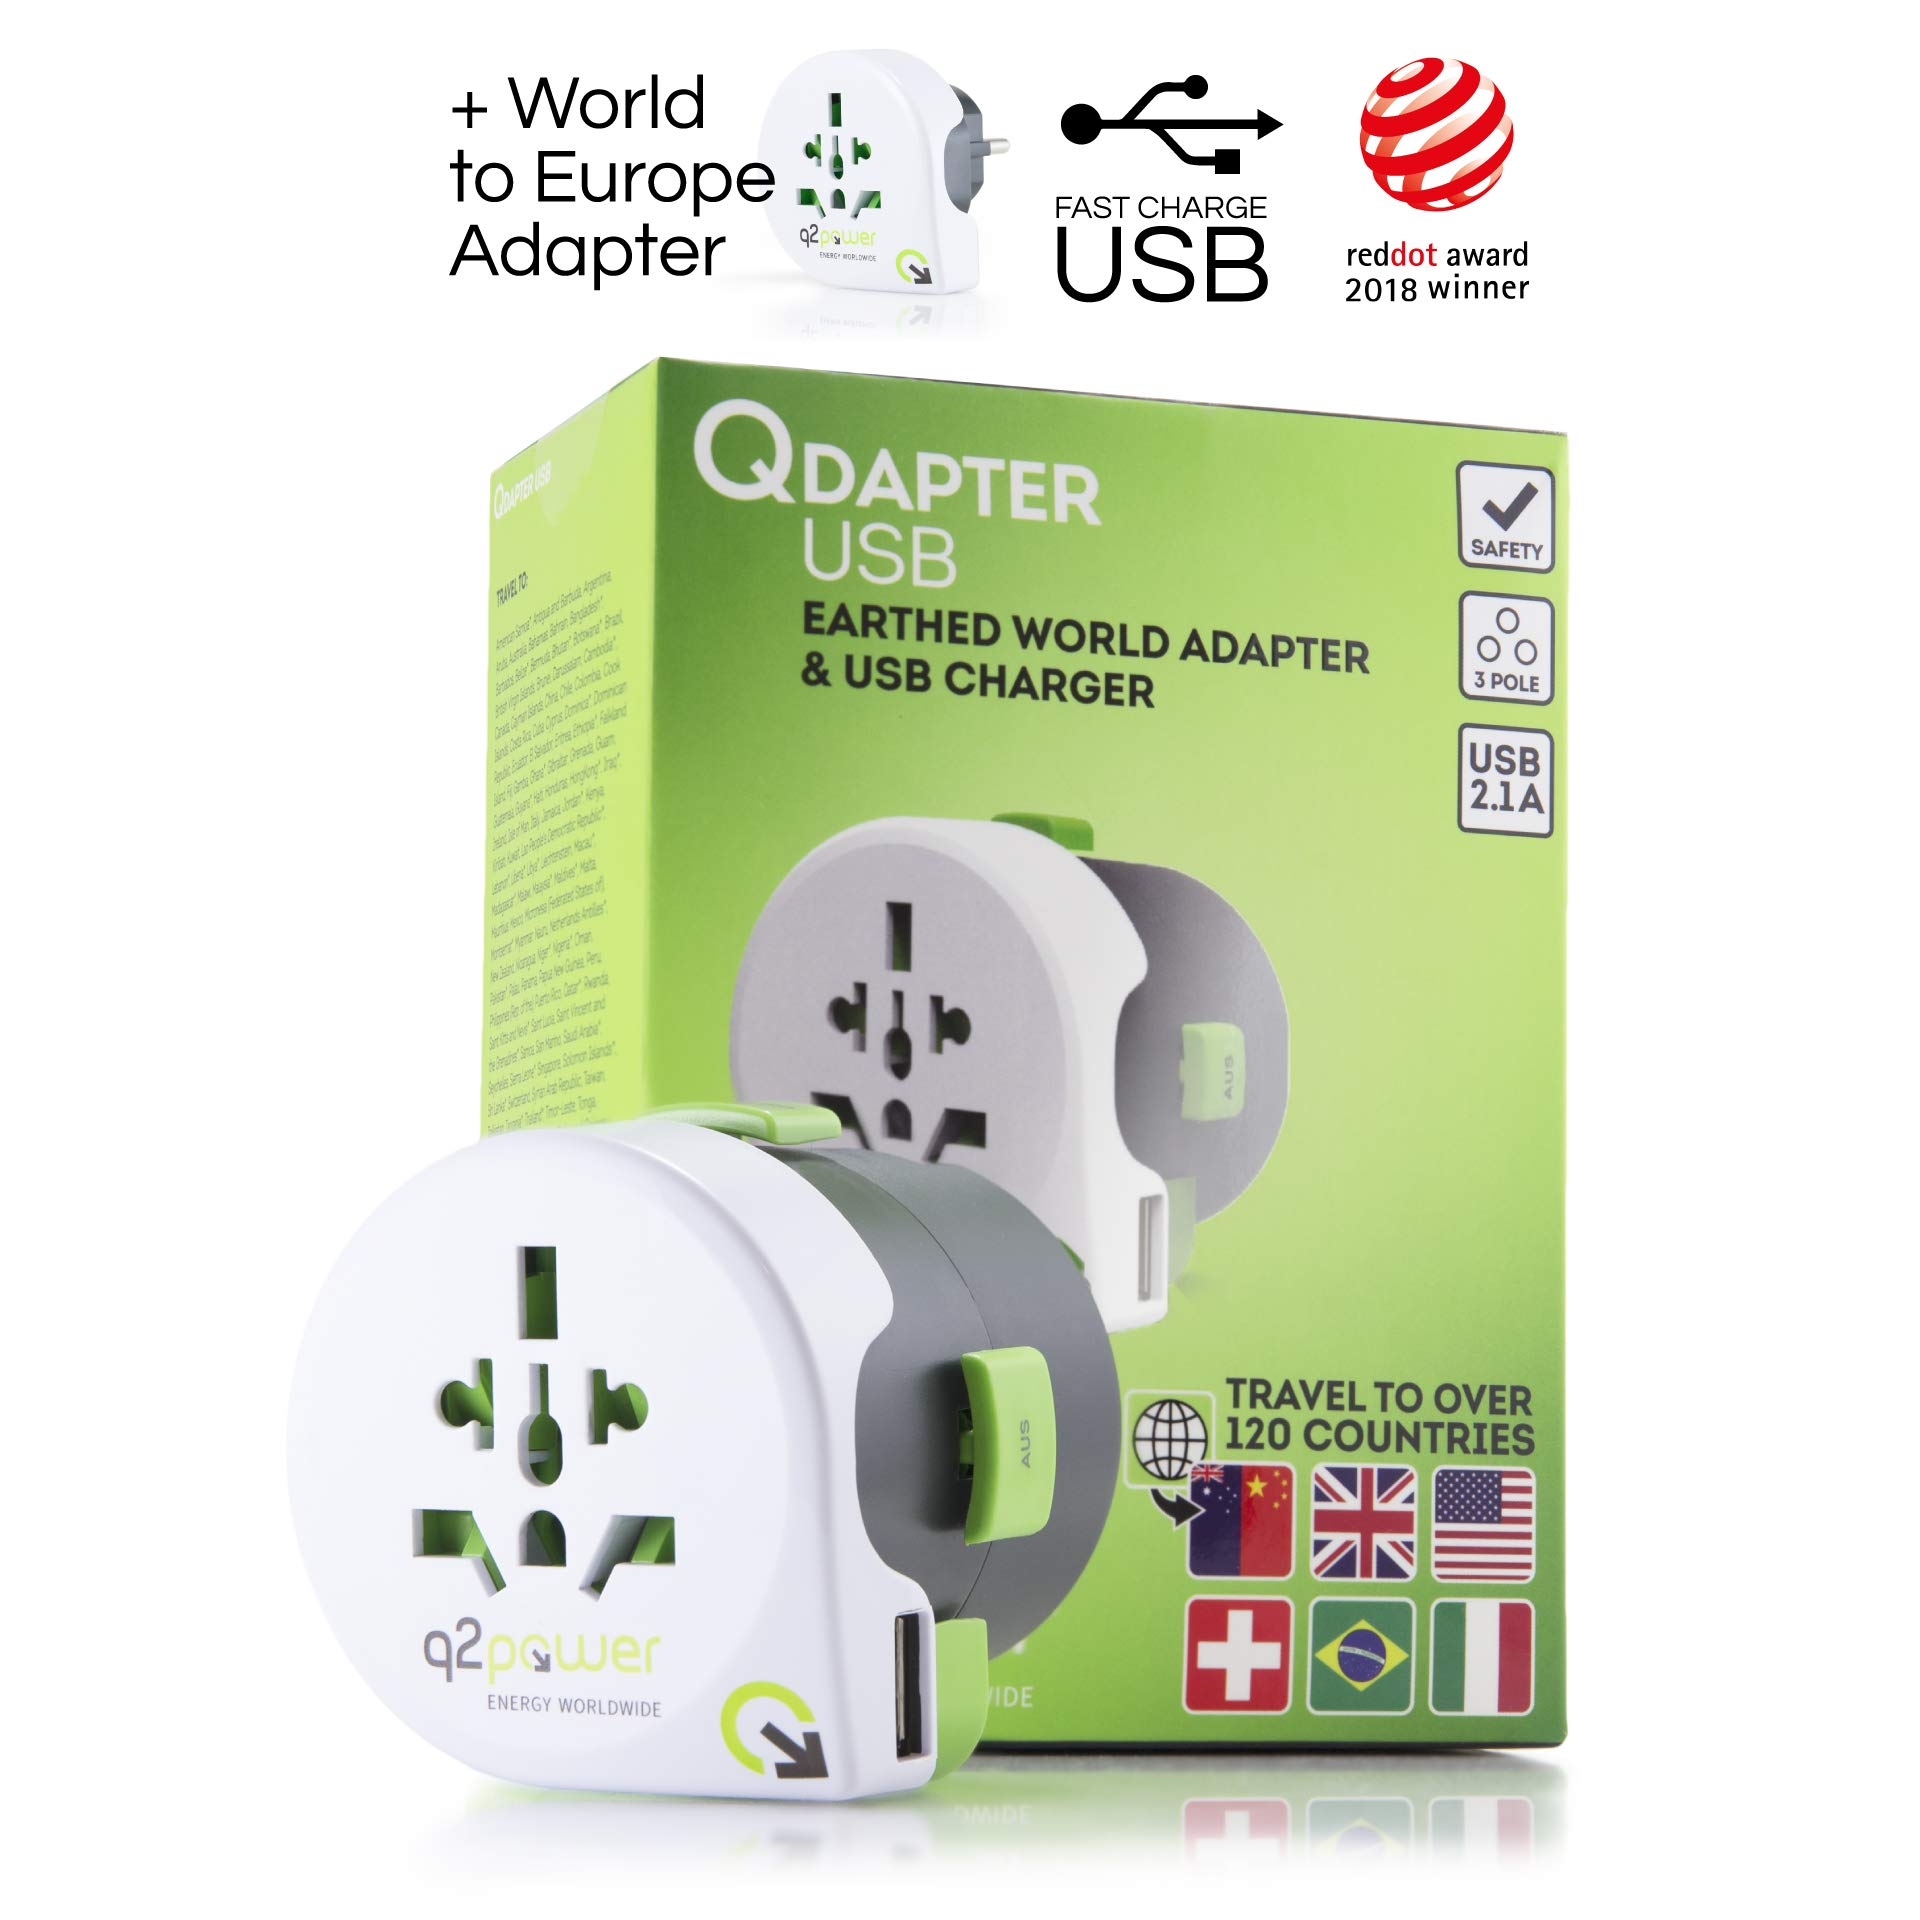 World Travel Adapter with USB Charger, Qdapter 360 by Q2Power, All-in-One International Travel Plug, Grounded & Safe by q2power